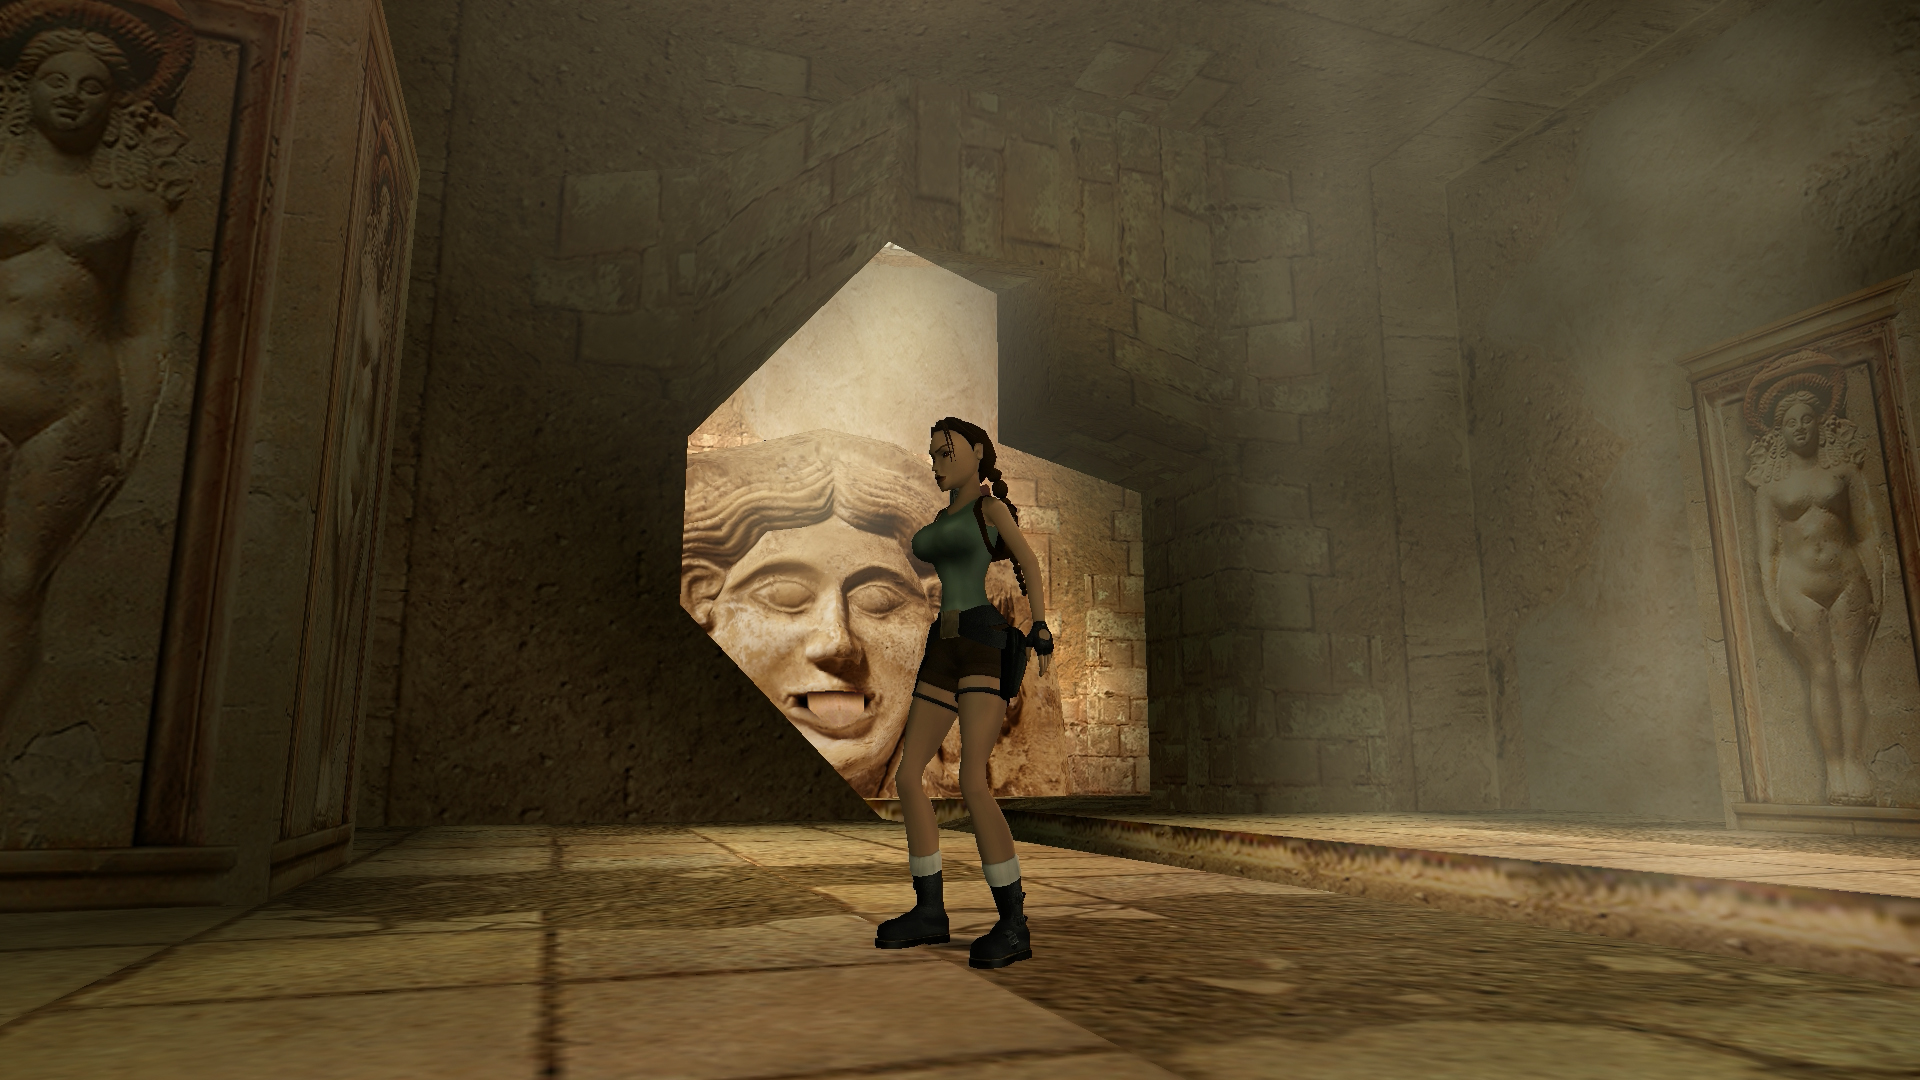 Tomb Raider 4 - Temple of Poseidon Remastered